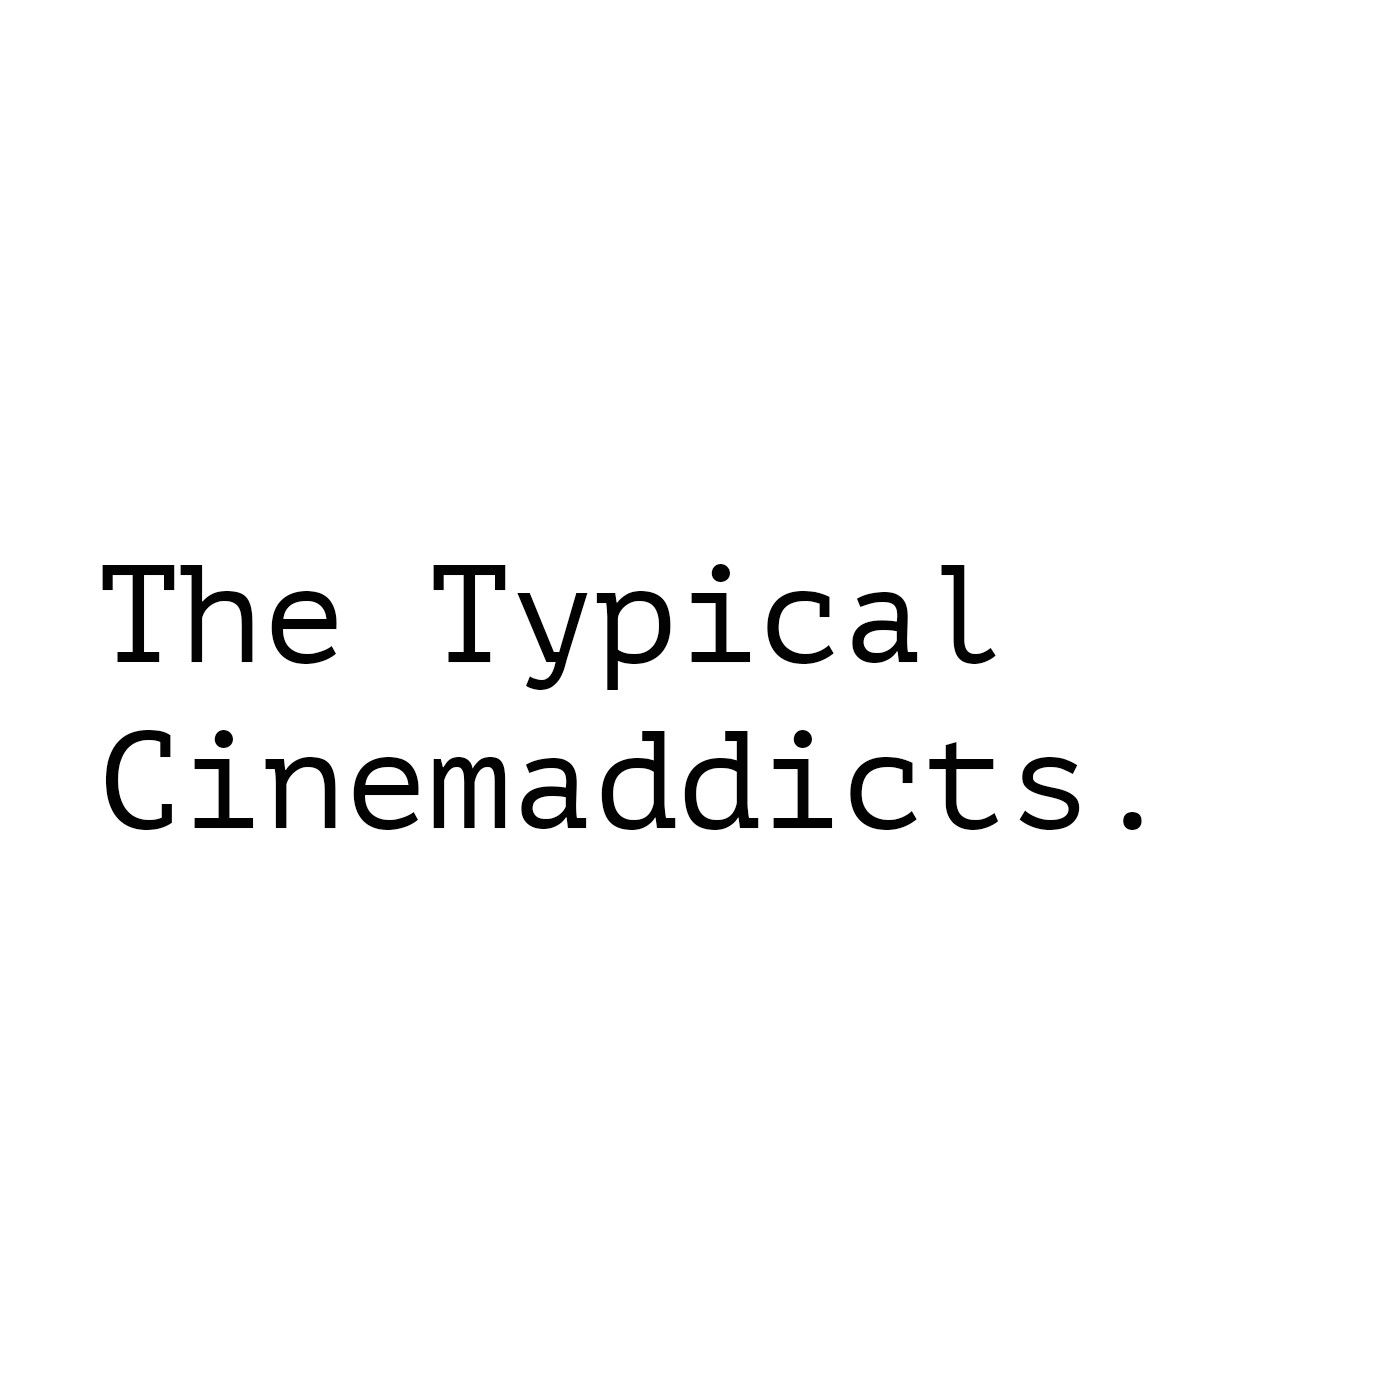 Typical Cinemaddicts